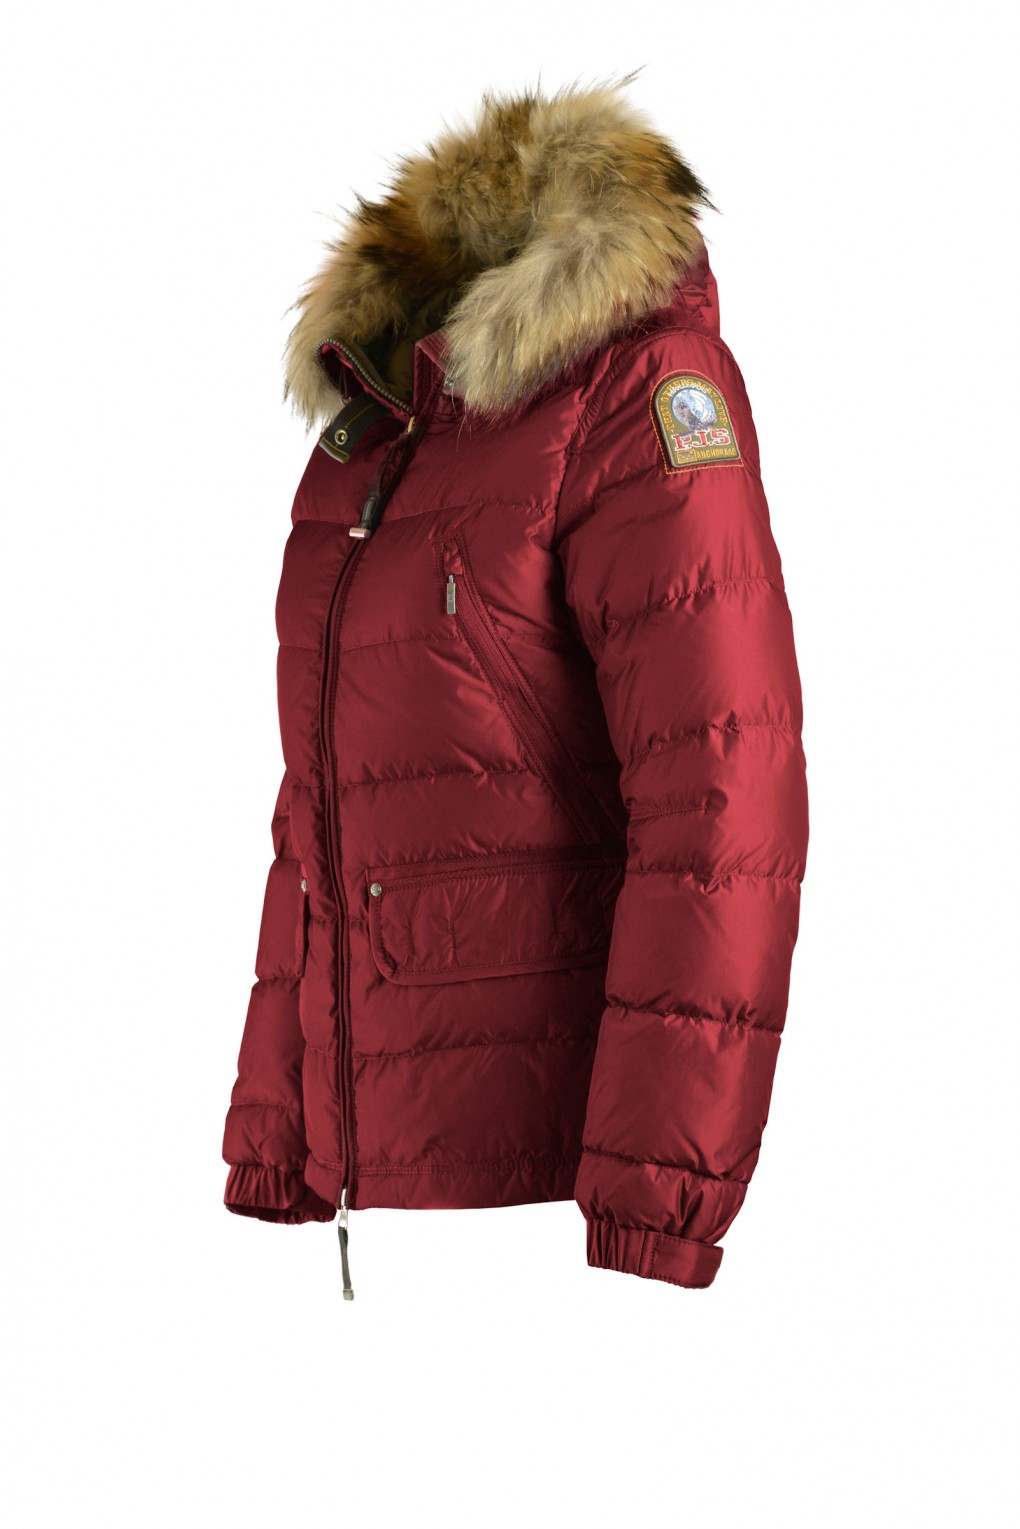 parajumpers ALASKA woman outerwear Red